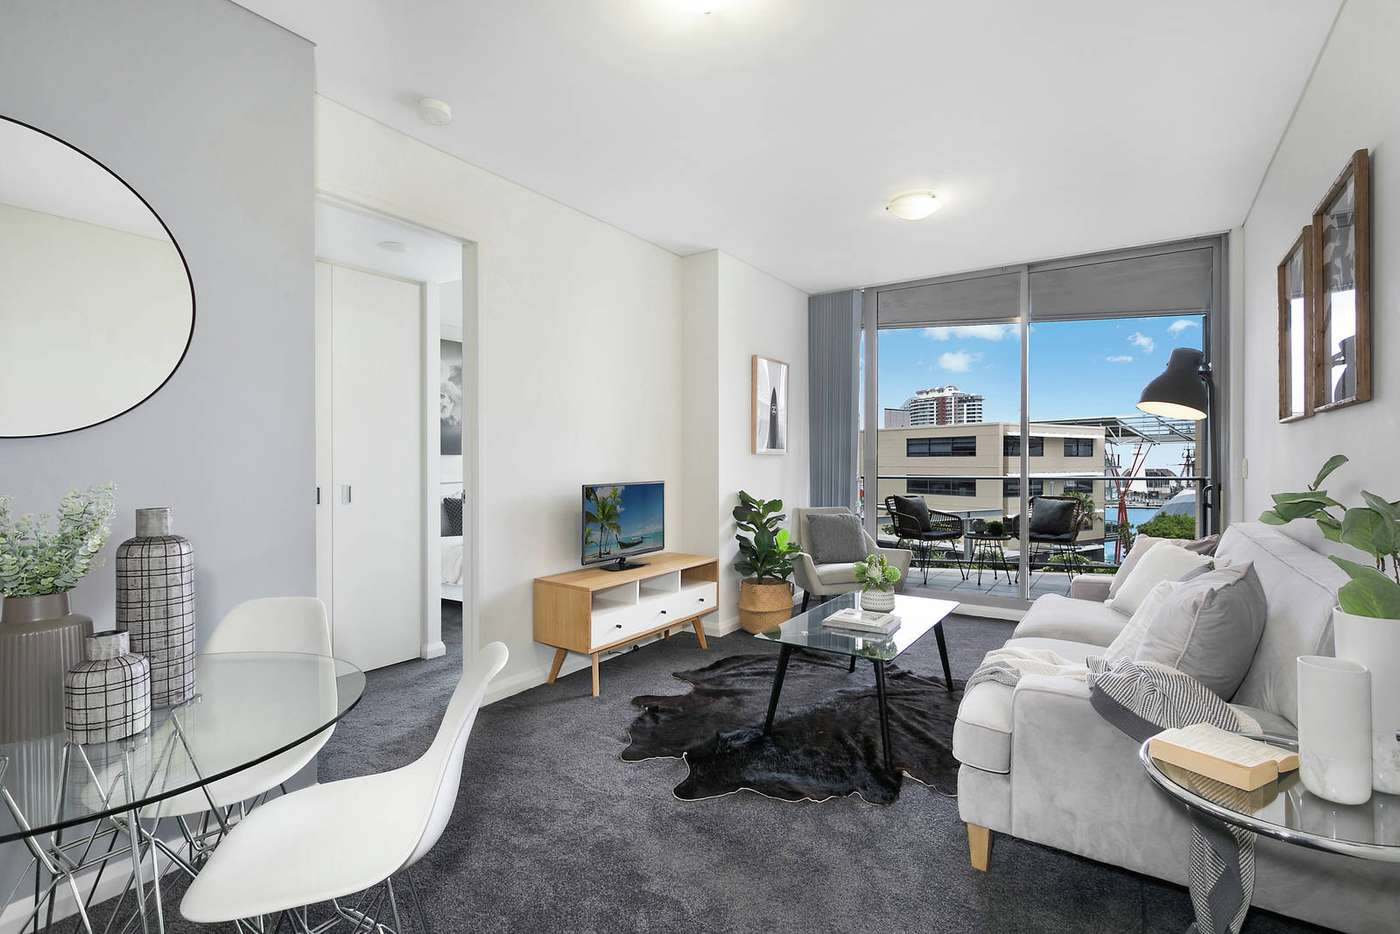 Main view of Homely apartment listing, 403/23 Shelley Street, Sydney NSW 2000